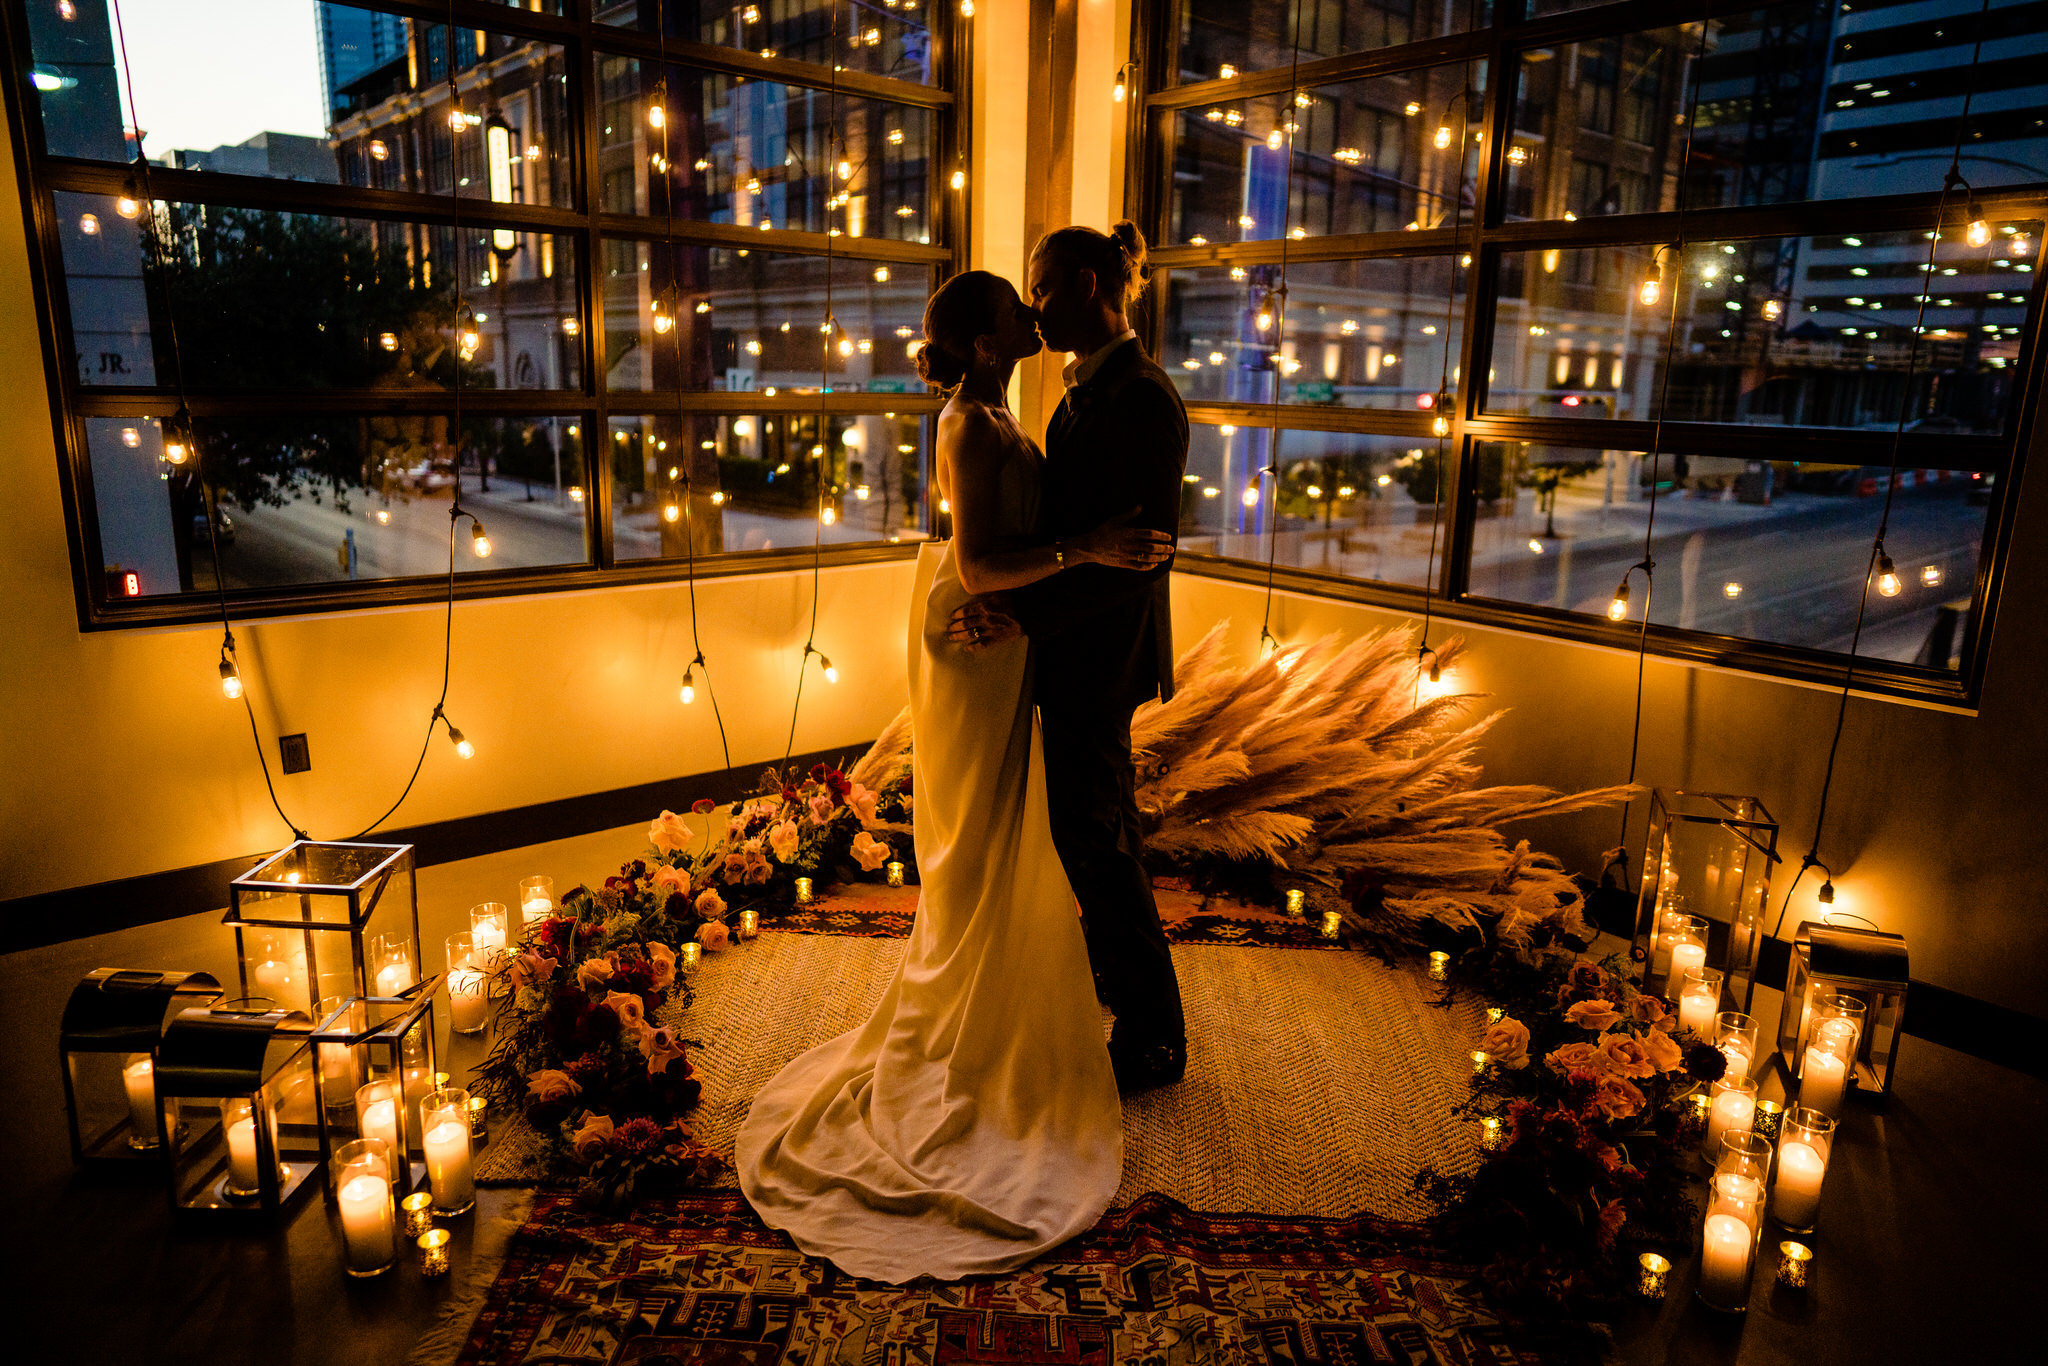 Evening couple portrait amid flowers, candles and urban view - photo by John Winters Photography